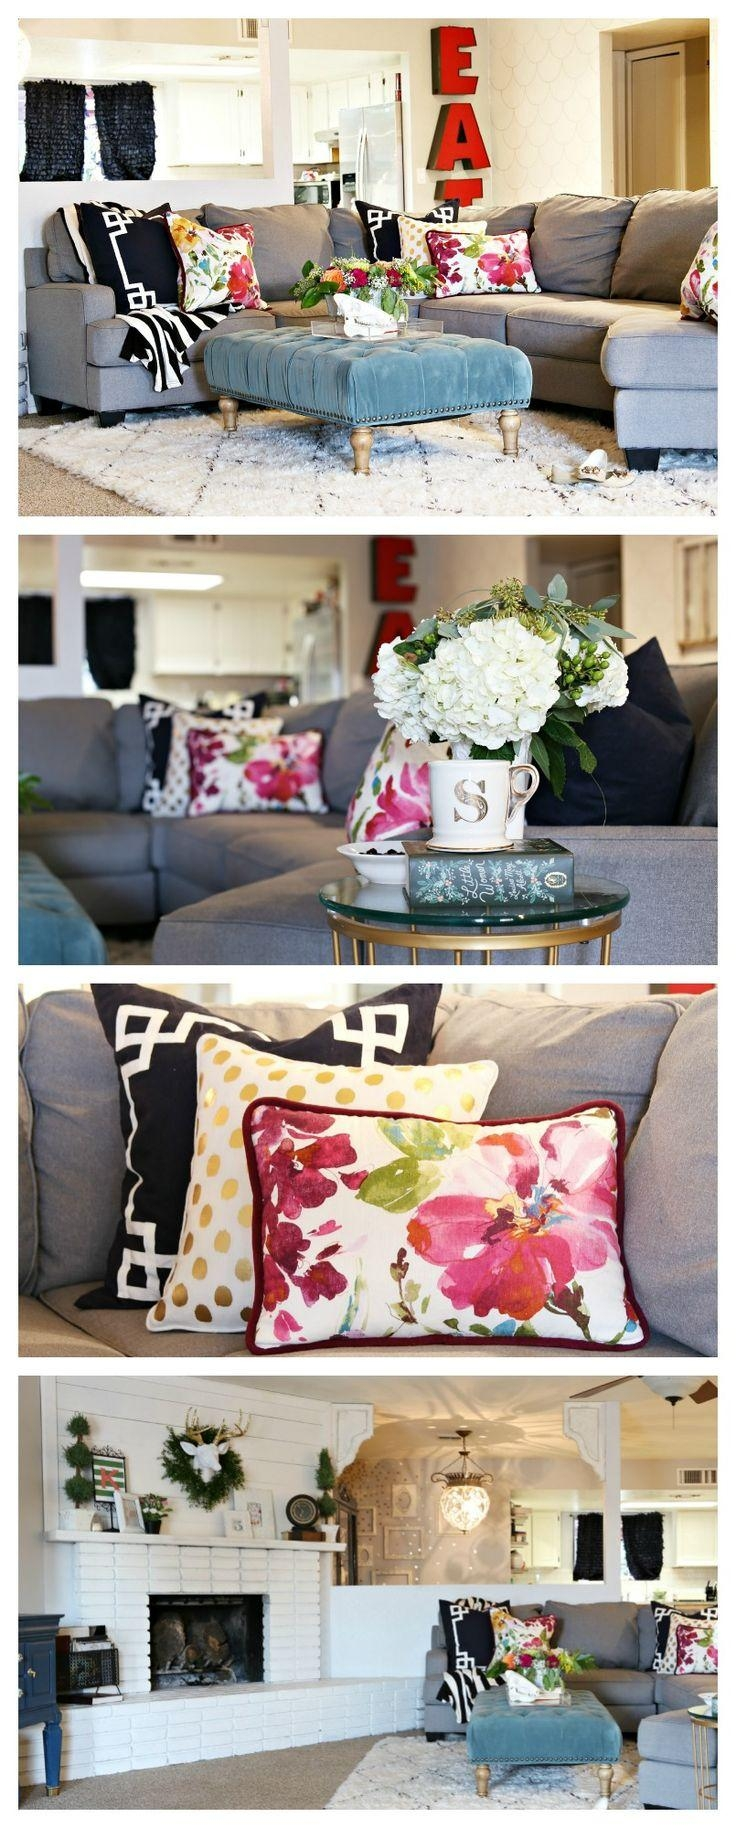 Best 25+ Floral Couch Ideas On Pinterest | Wall Murals Uk, Floral In Chintz Floral Sofas (View 20 of 22)